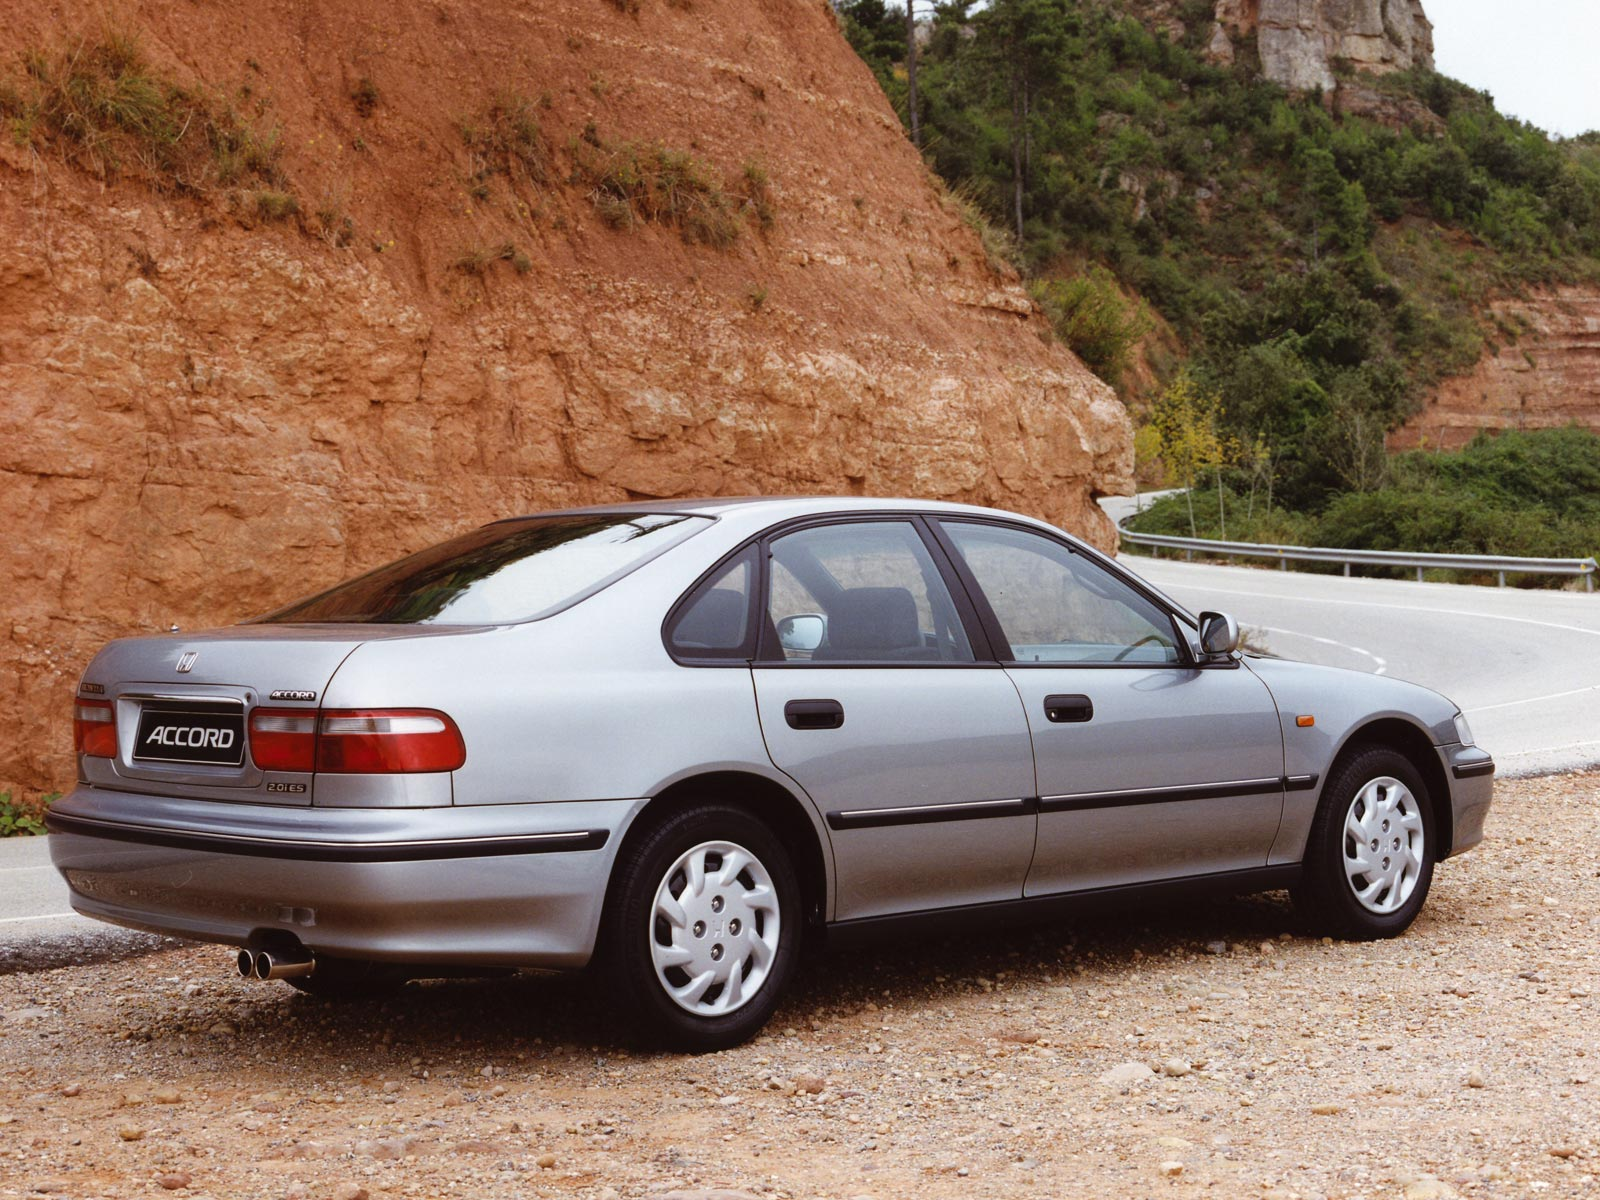 1993 Honda Accord Lx Engine Diagram Free Wiring For You Image User 1994